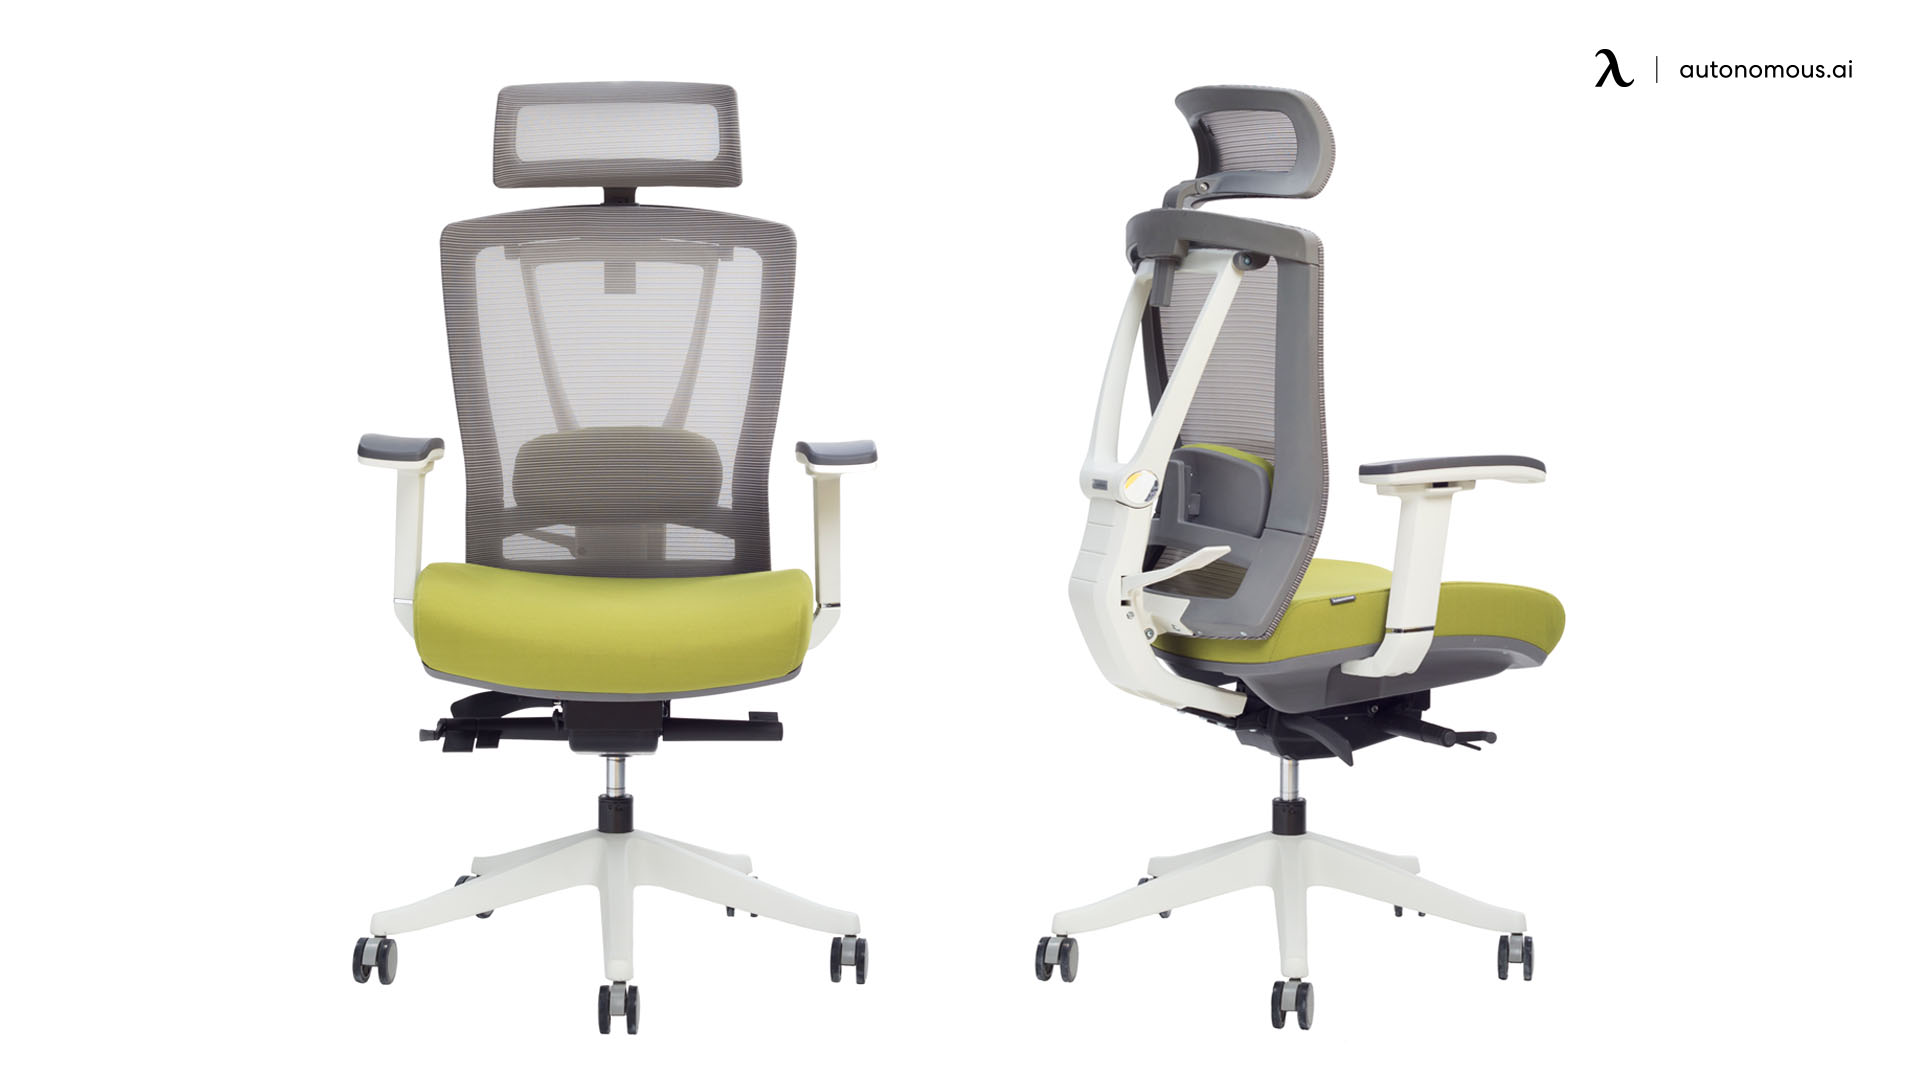 Best Ergonomic Office Chairs In Canada, Ergonomic Office Chair Canada